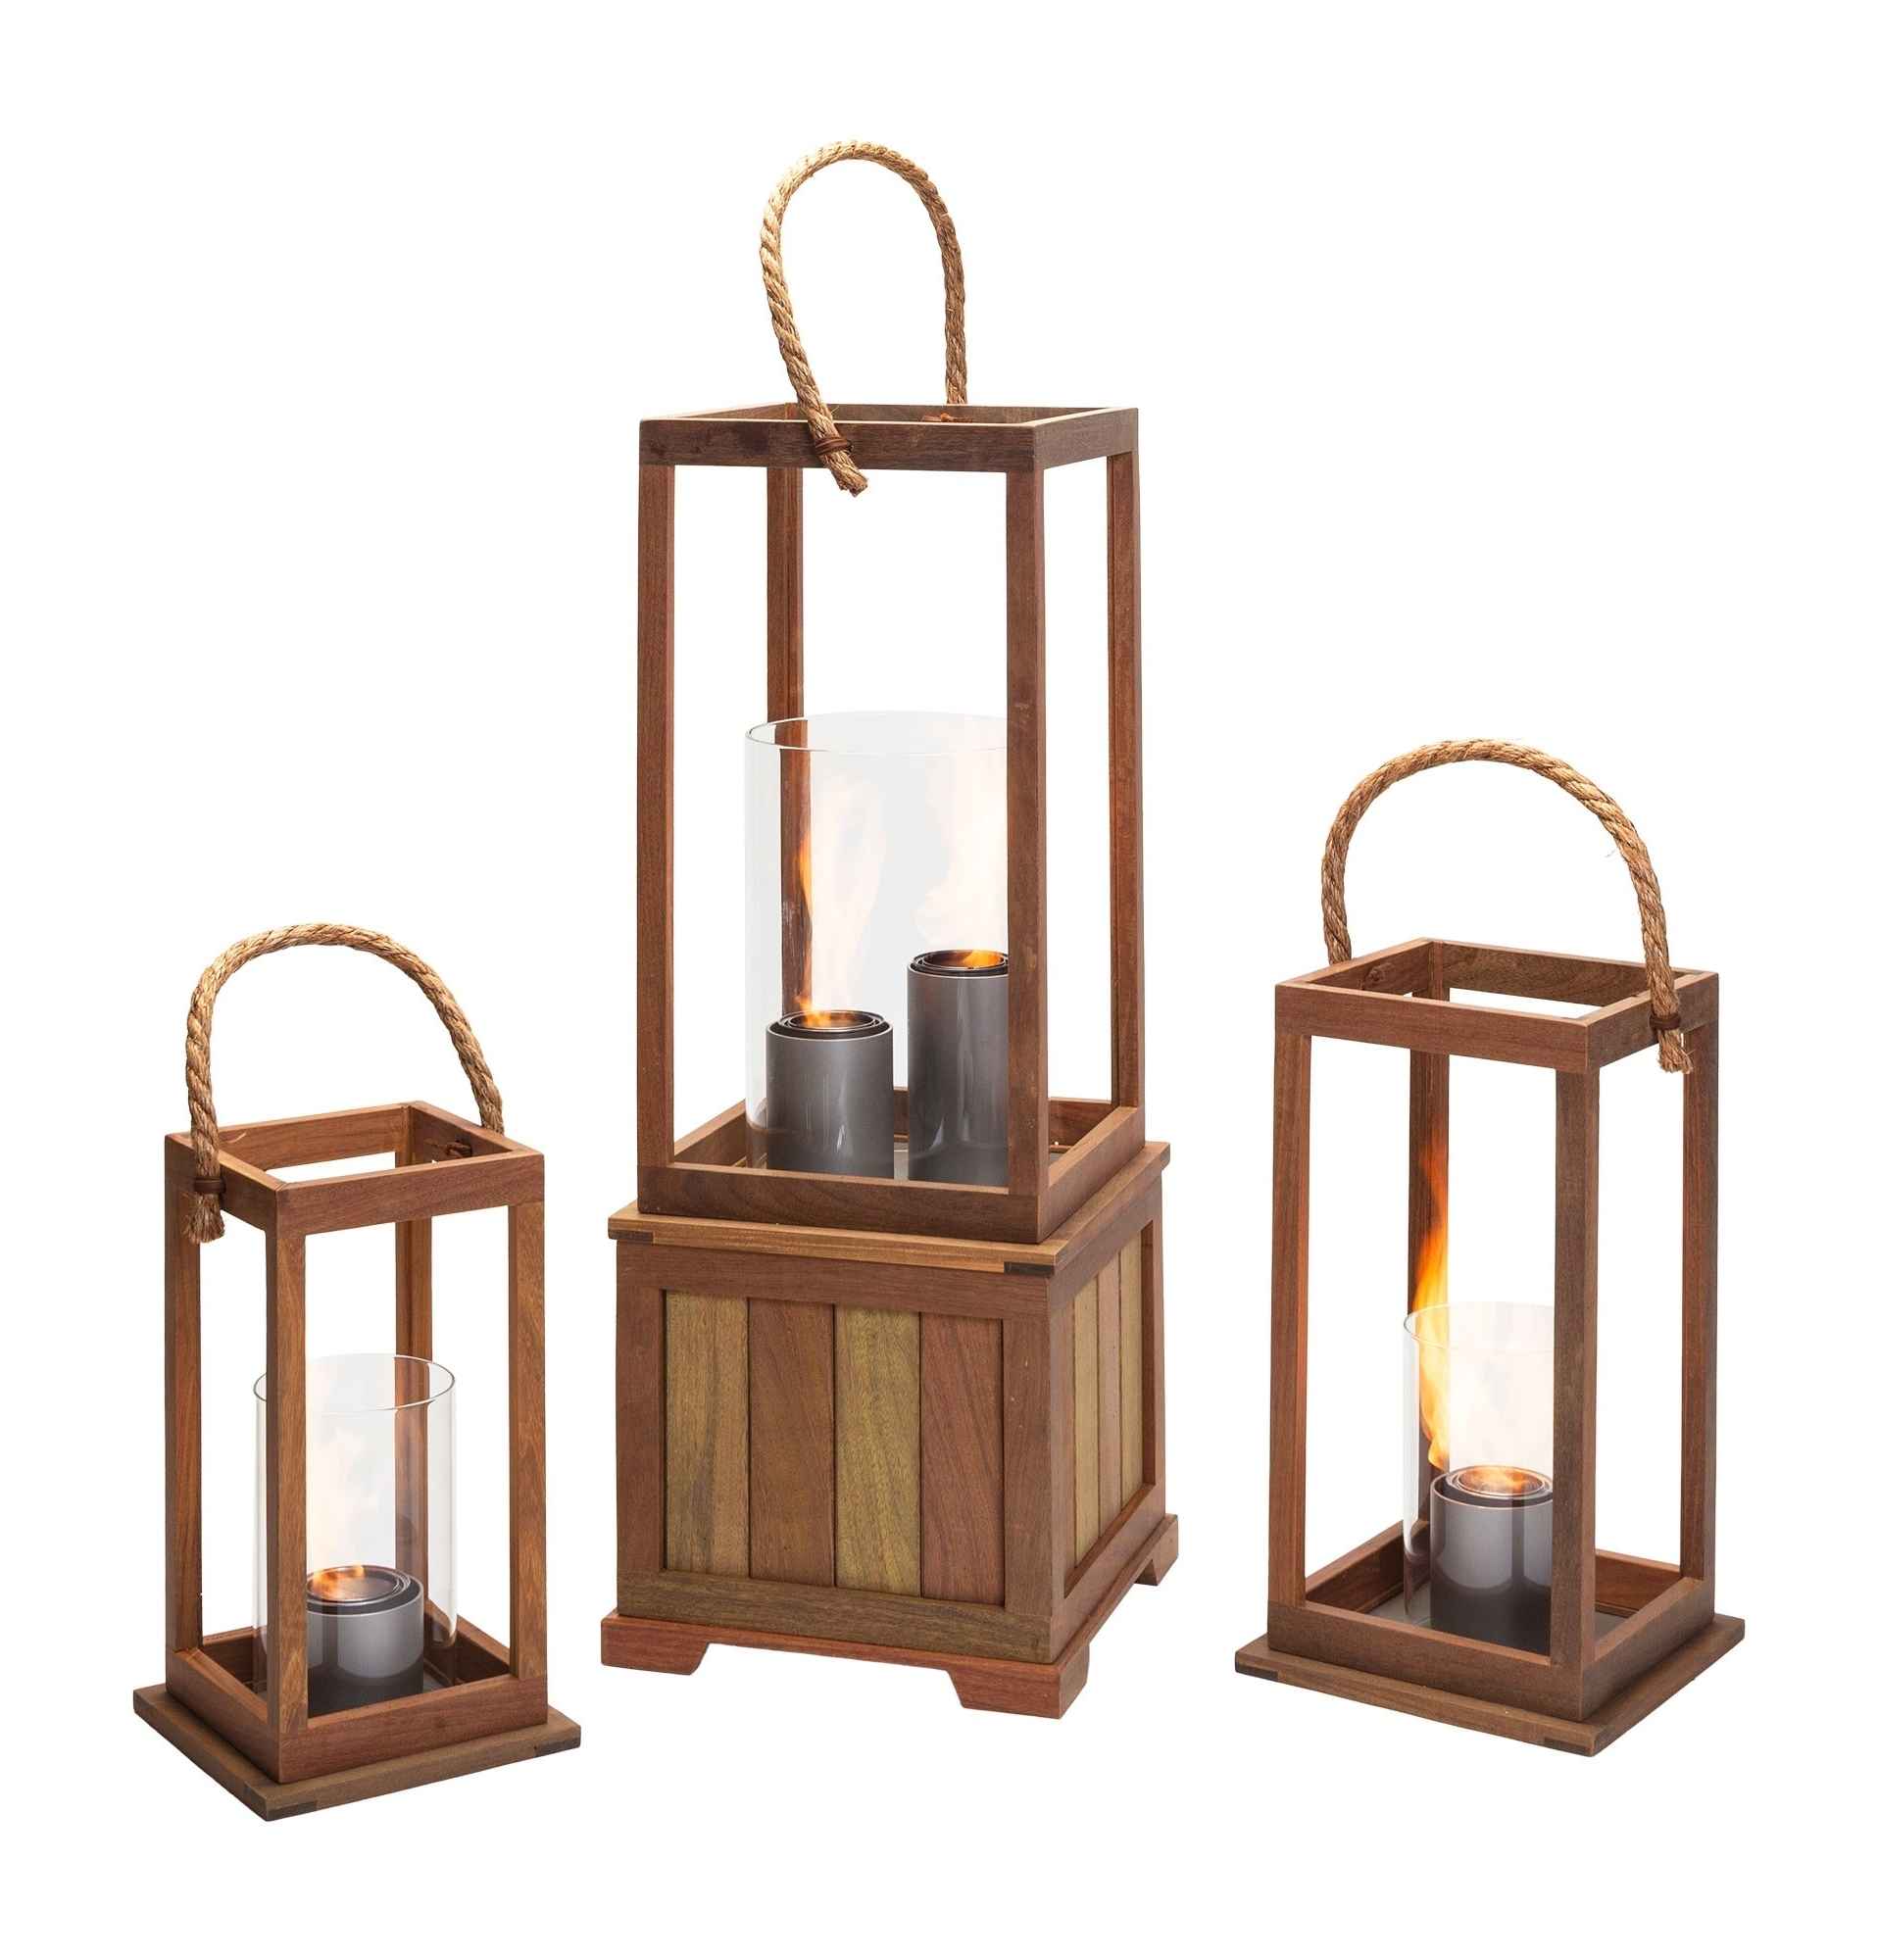 Sonoma 17 Inch Outdoor Lantern In Ipe Woodnorthcape Fire With 2019 Outdoor Gel Lanterns (View 5 of 20)